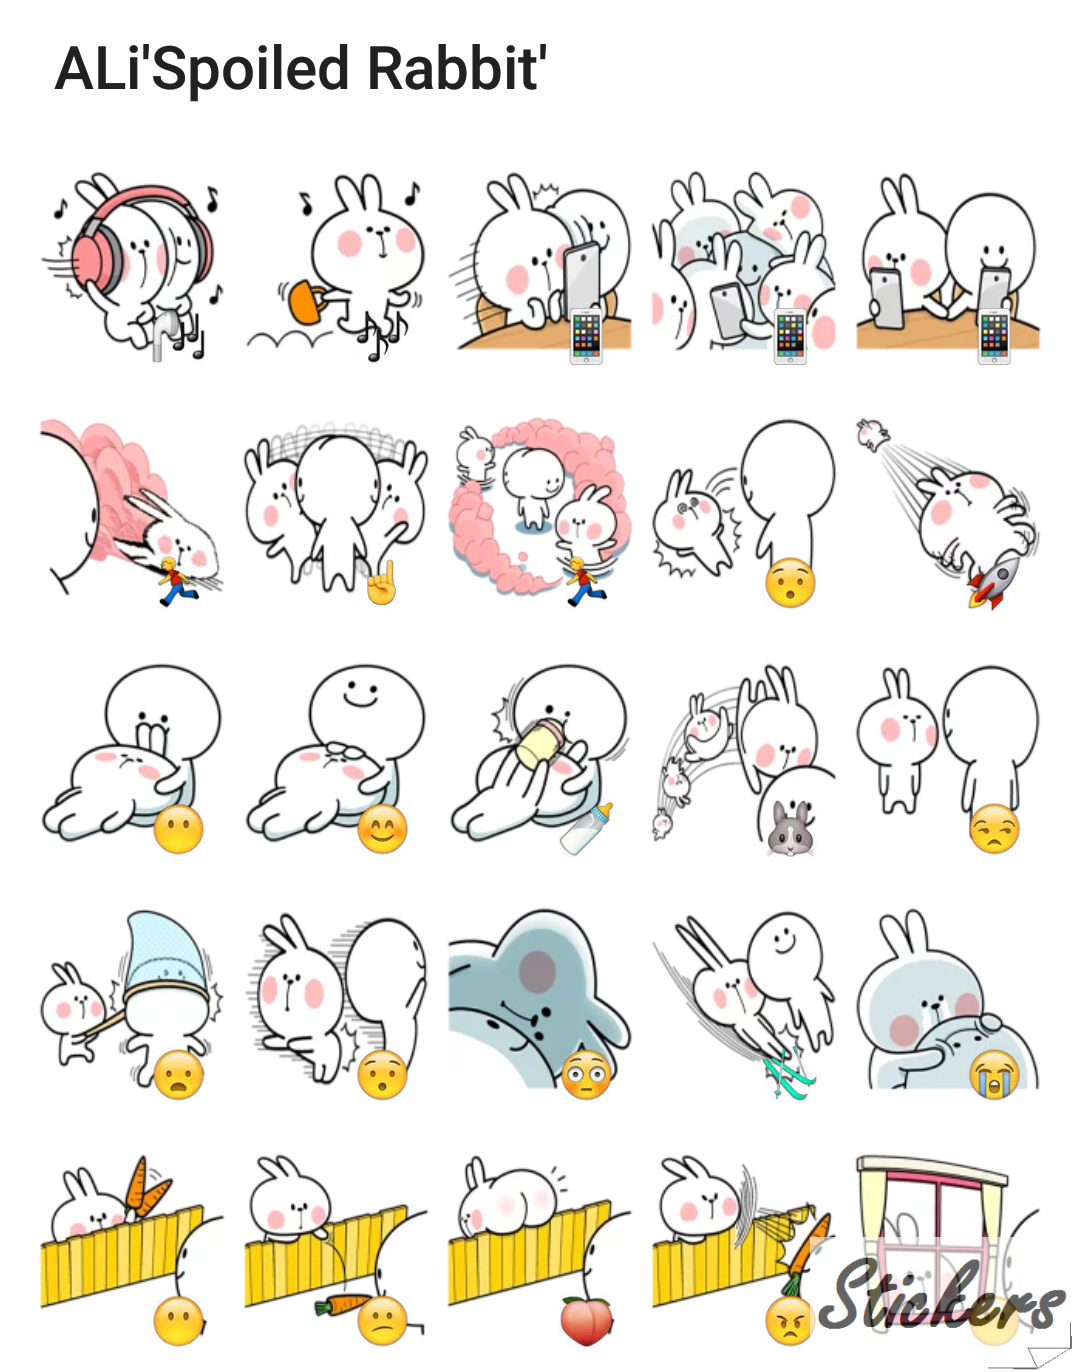 ALi'Spoiled Rabbit' Telegram sticker set